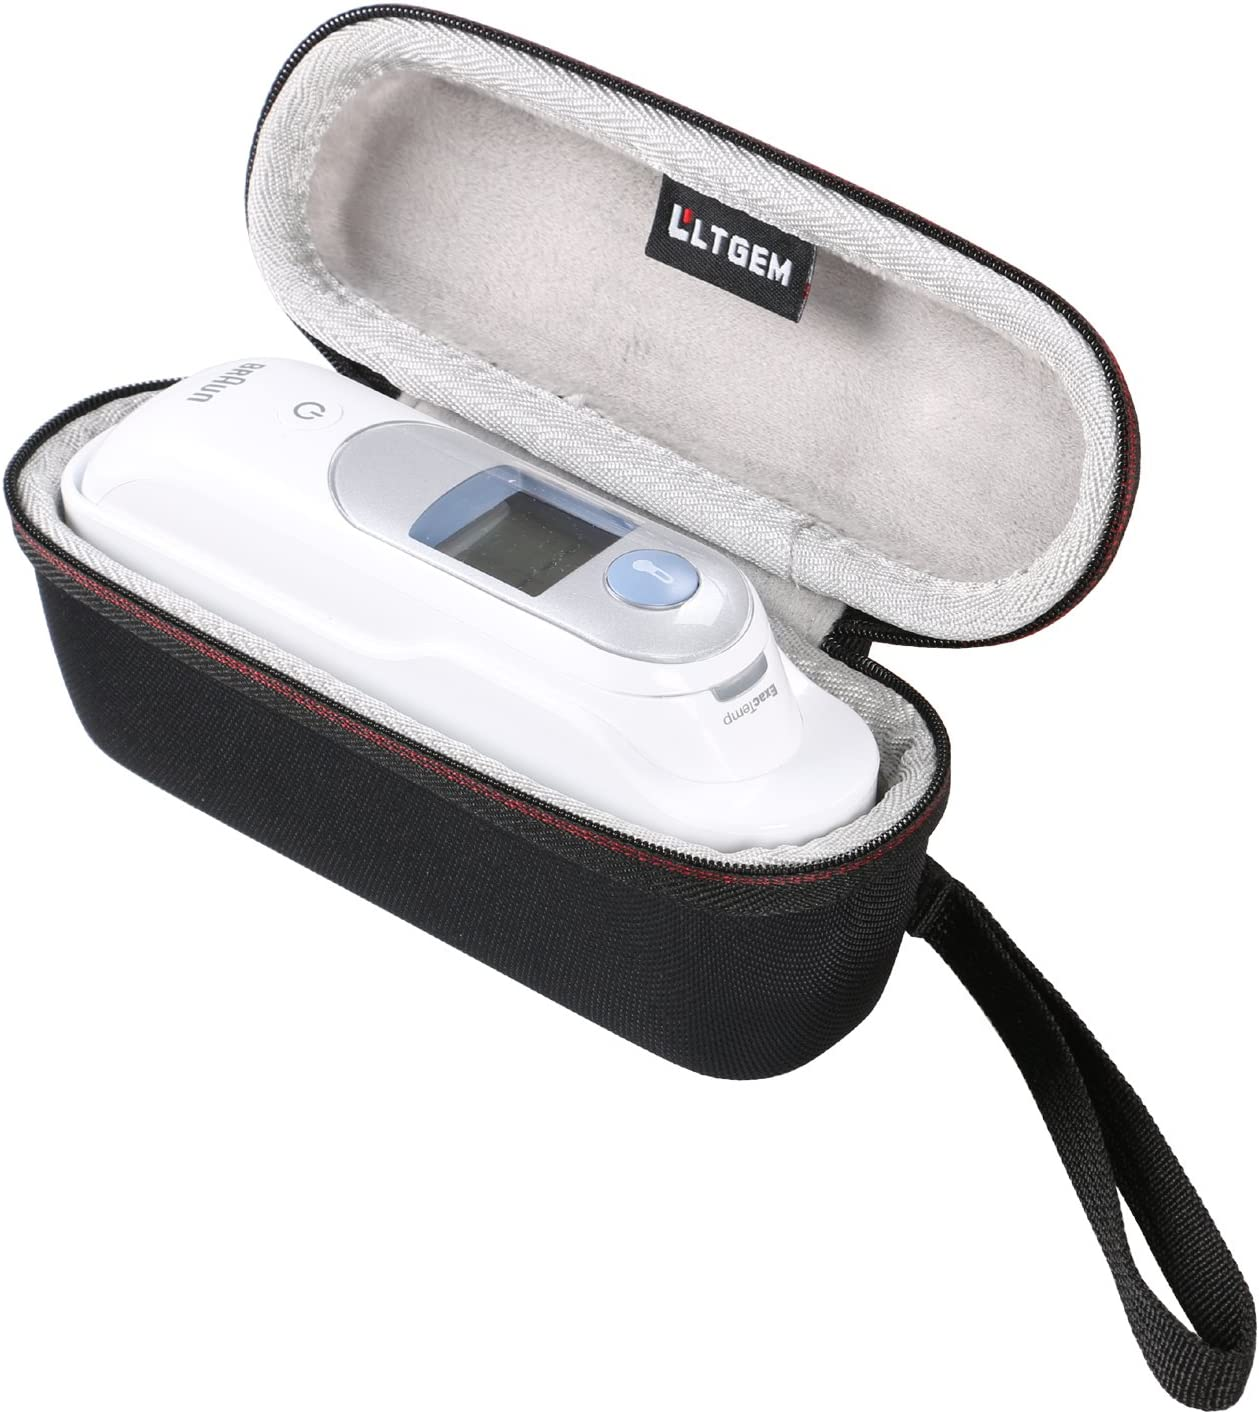 Thermometer Case by LTGEM - Fits for Braun Digital Ear Thermometer ThermoScan 5 IRT6500 & Braun Thermoscan 7 EVA Hard Case Travel Protective Carrying Storage Bag